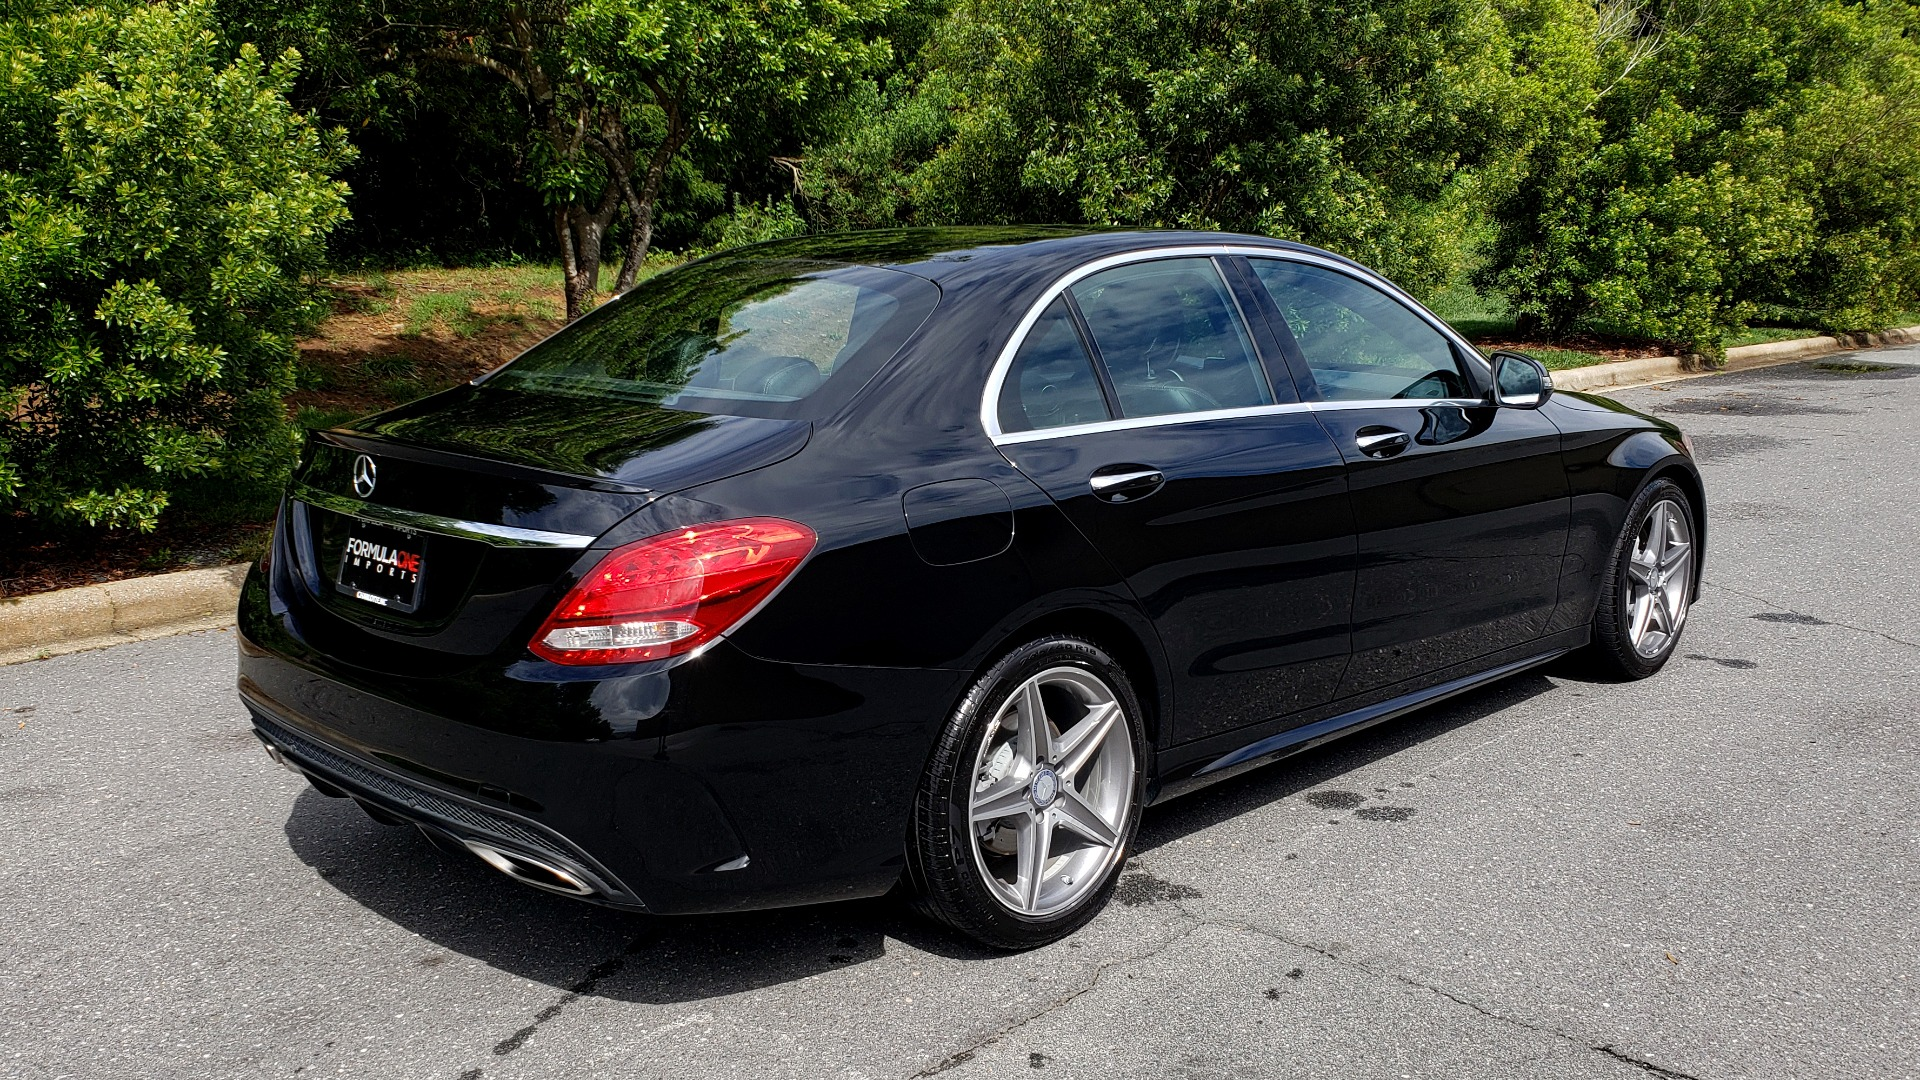 Used 2016 Mercedes-Benz C-CLASS C300 SPORT / PREM PKG / NAV / PANO-ROOF / REARVIEW / KEYLESS-GO for sale Sold at Formula Imports in Charlotte NC 28227 9